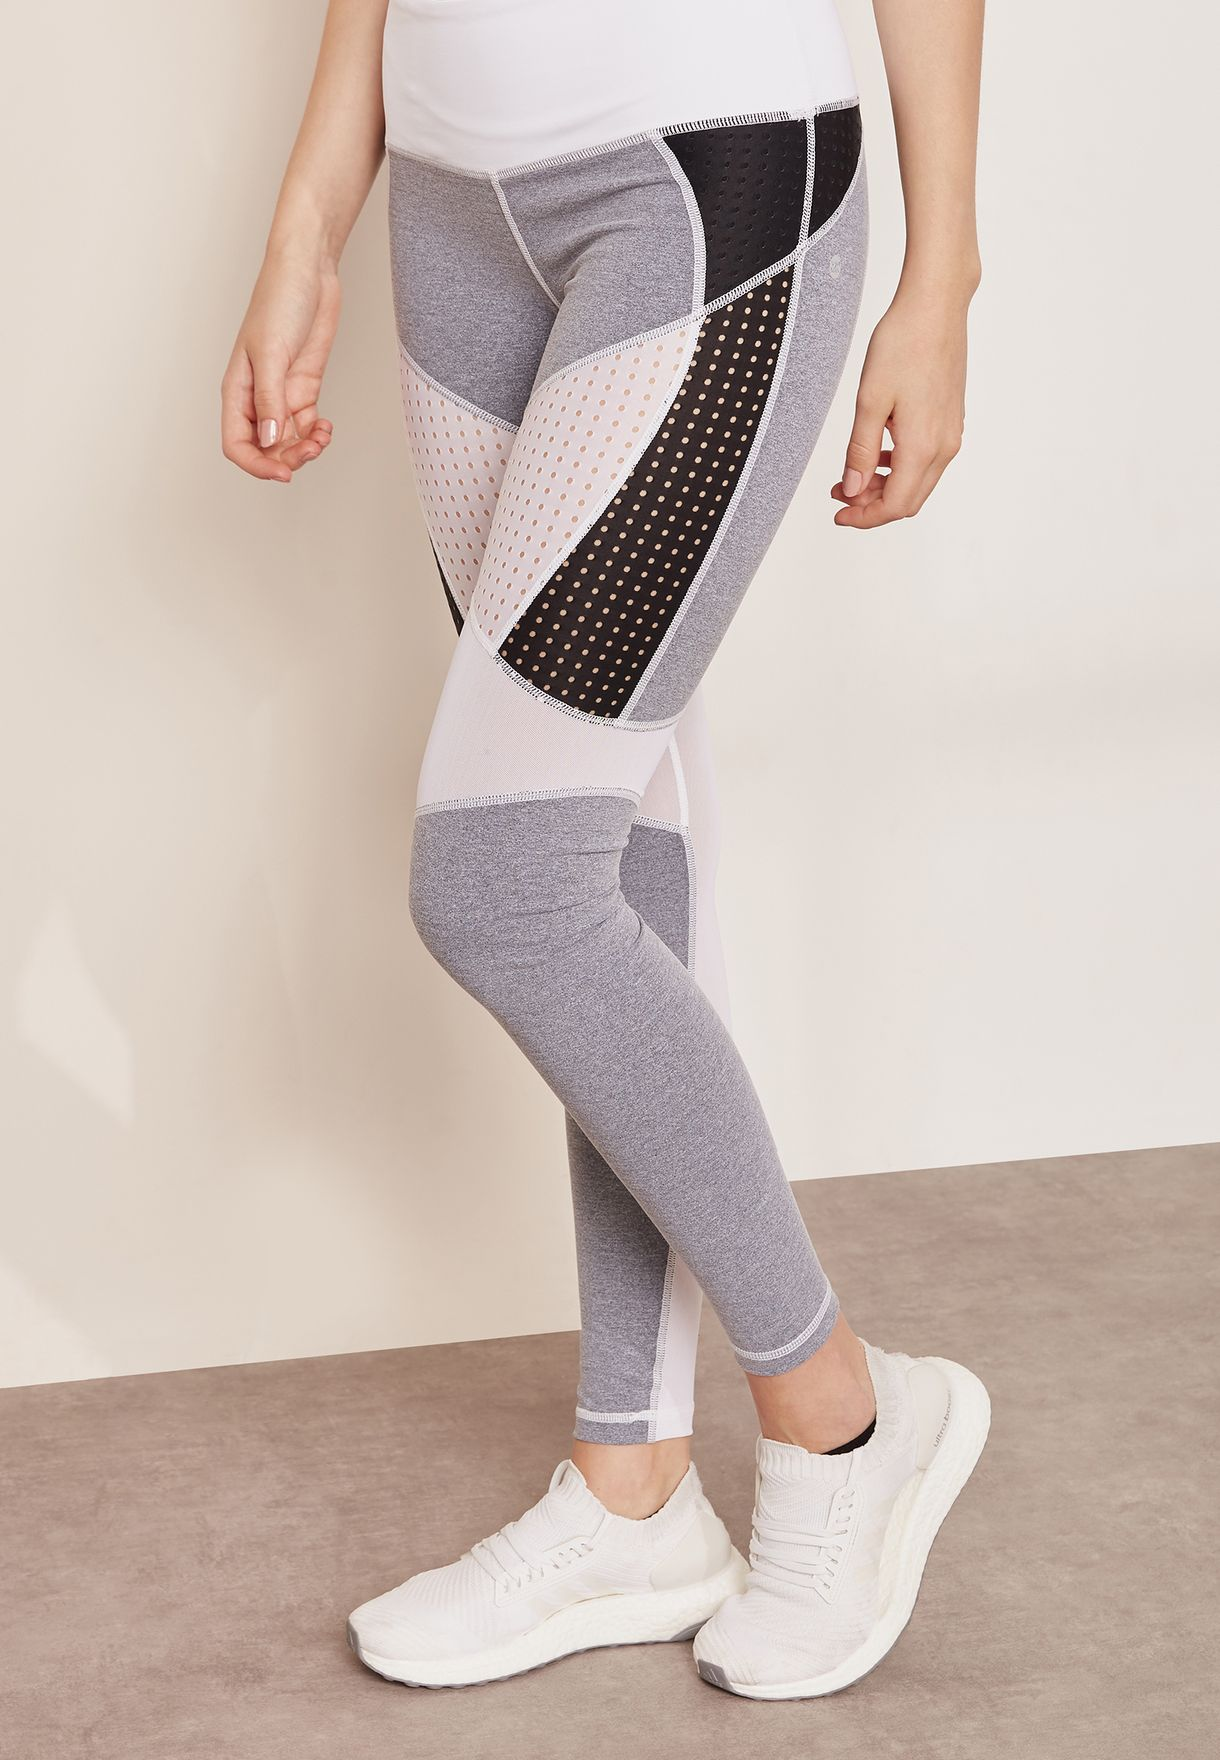 Diligence Leggings